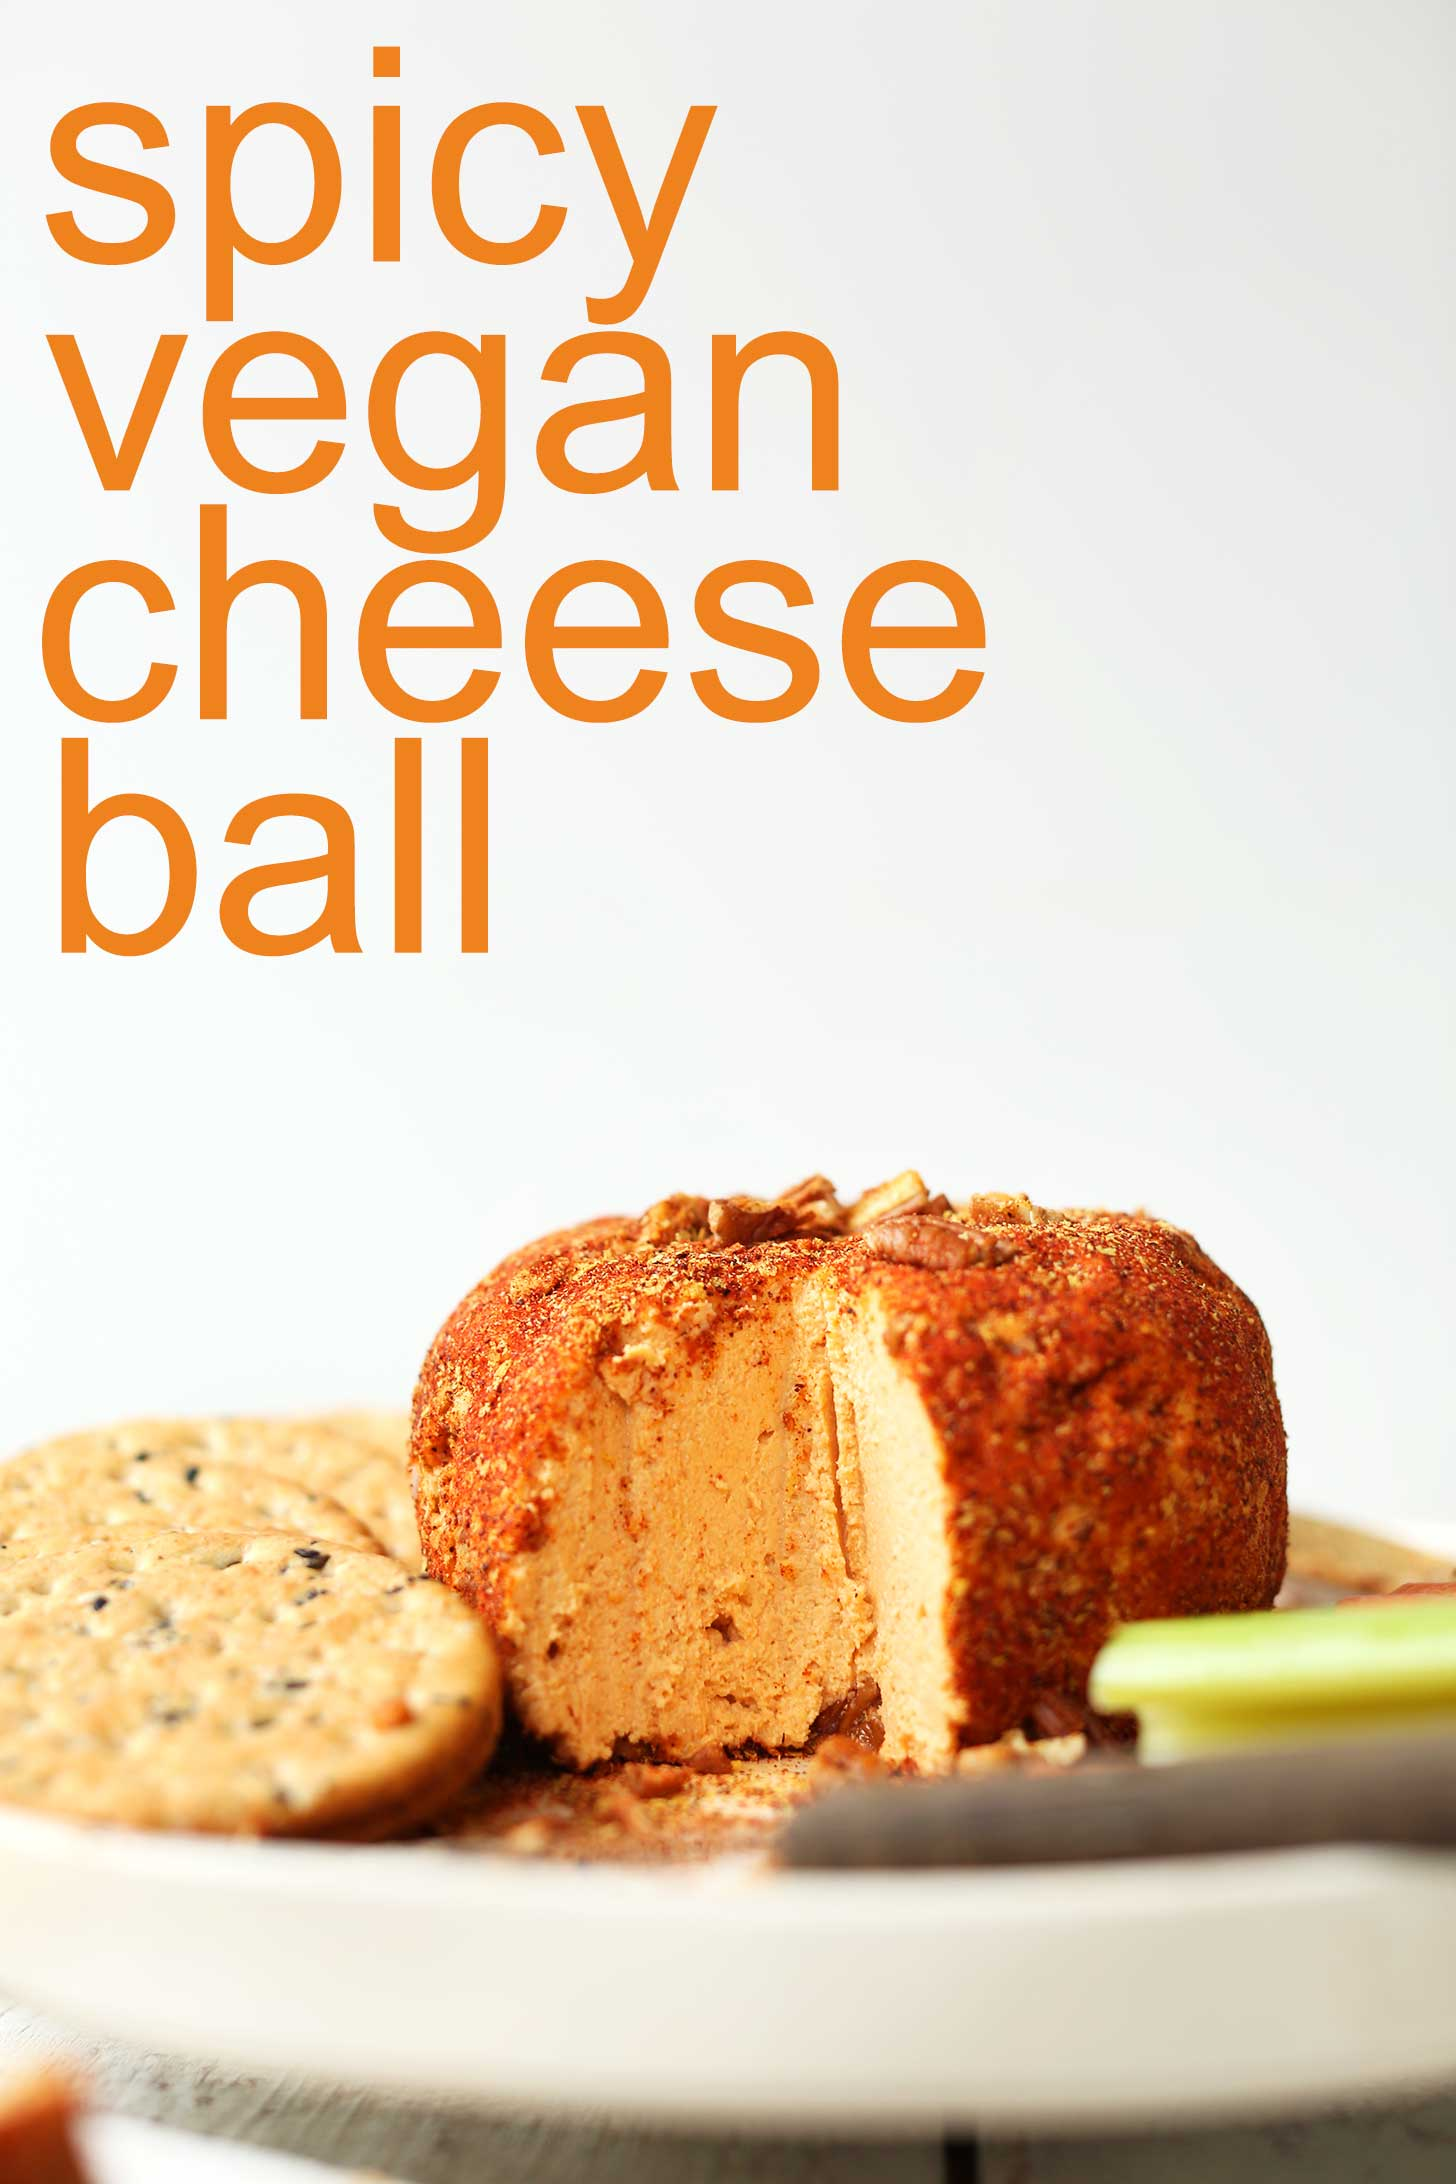 Spicy Vegan Cheese Ball on a plate with crackers and veggies for a holiday appetizer